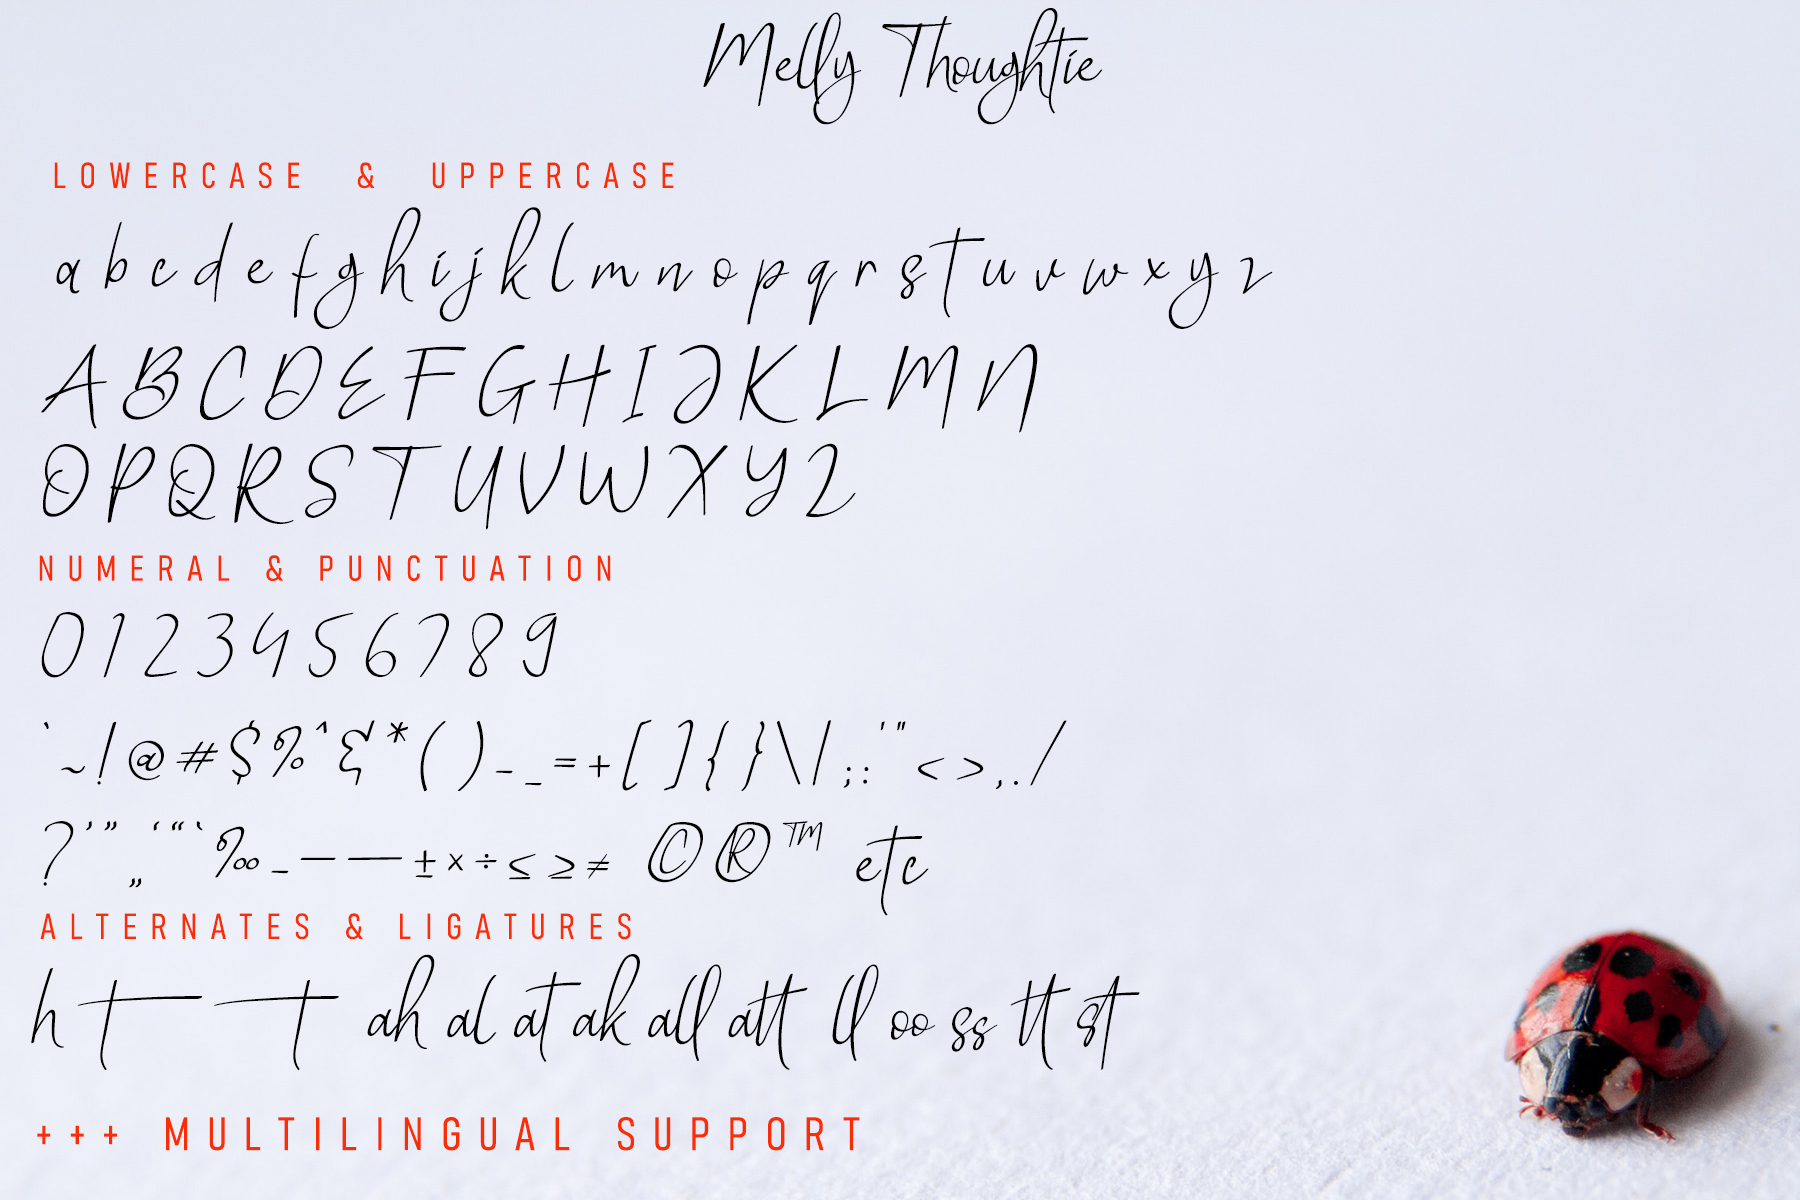 Melly Thoughtie Handwritten Font -3